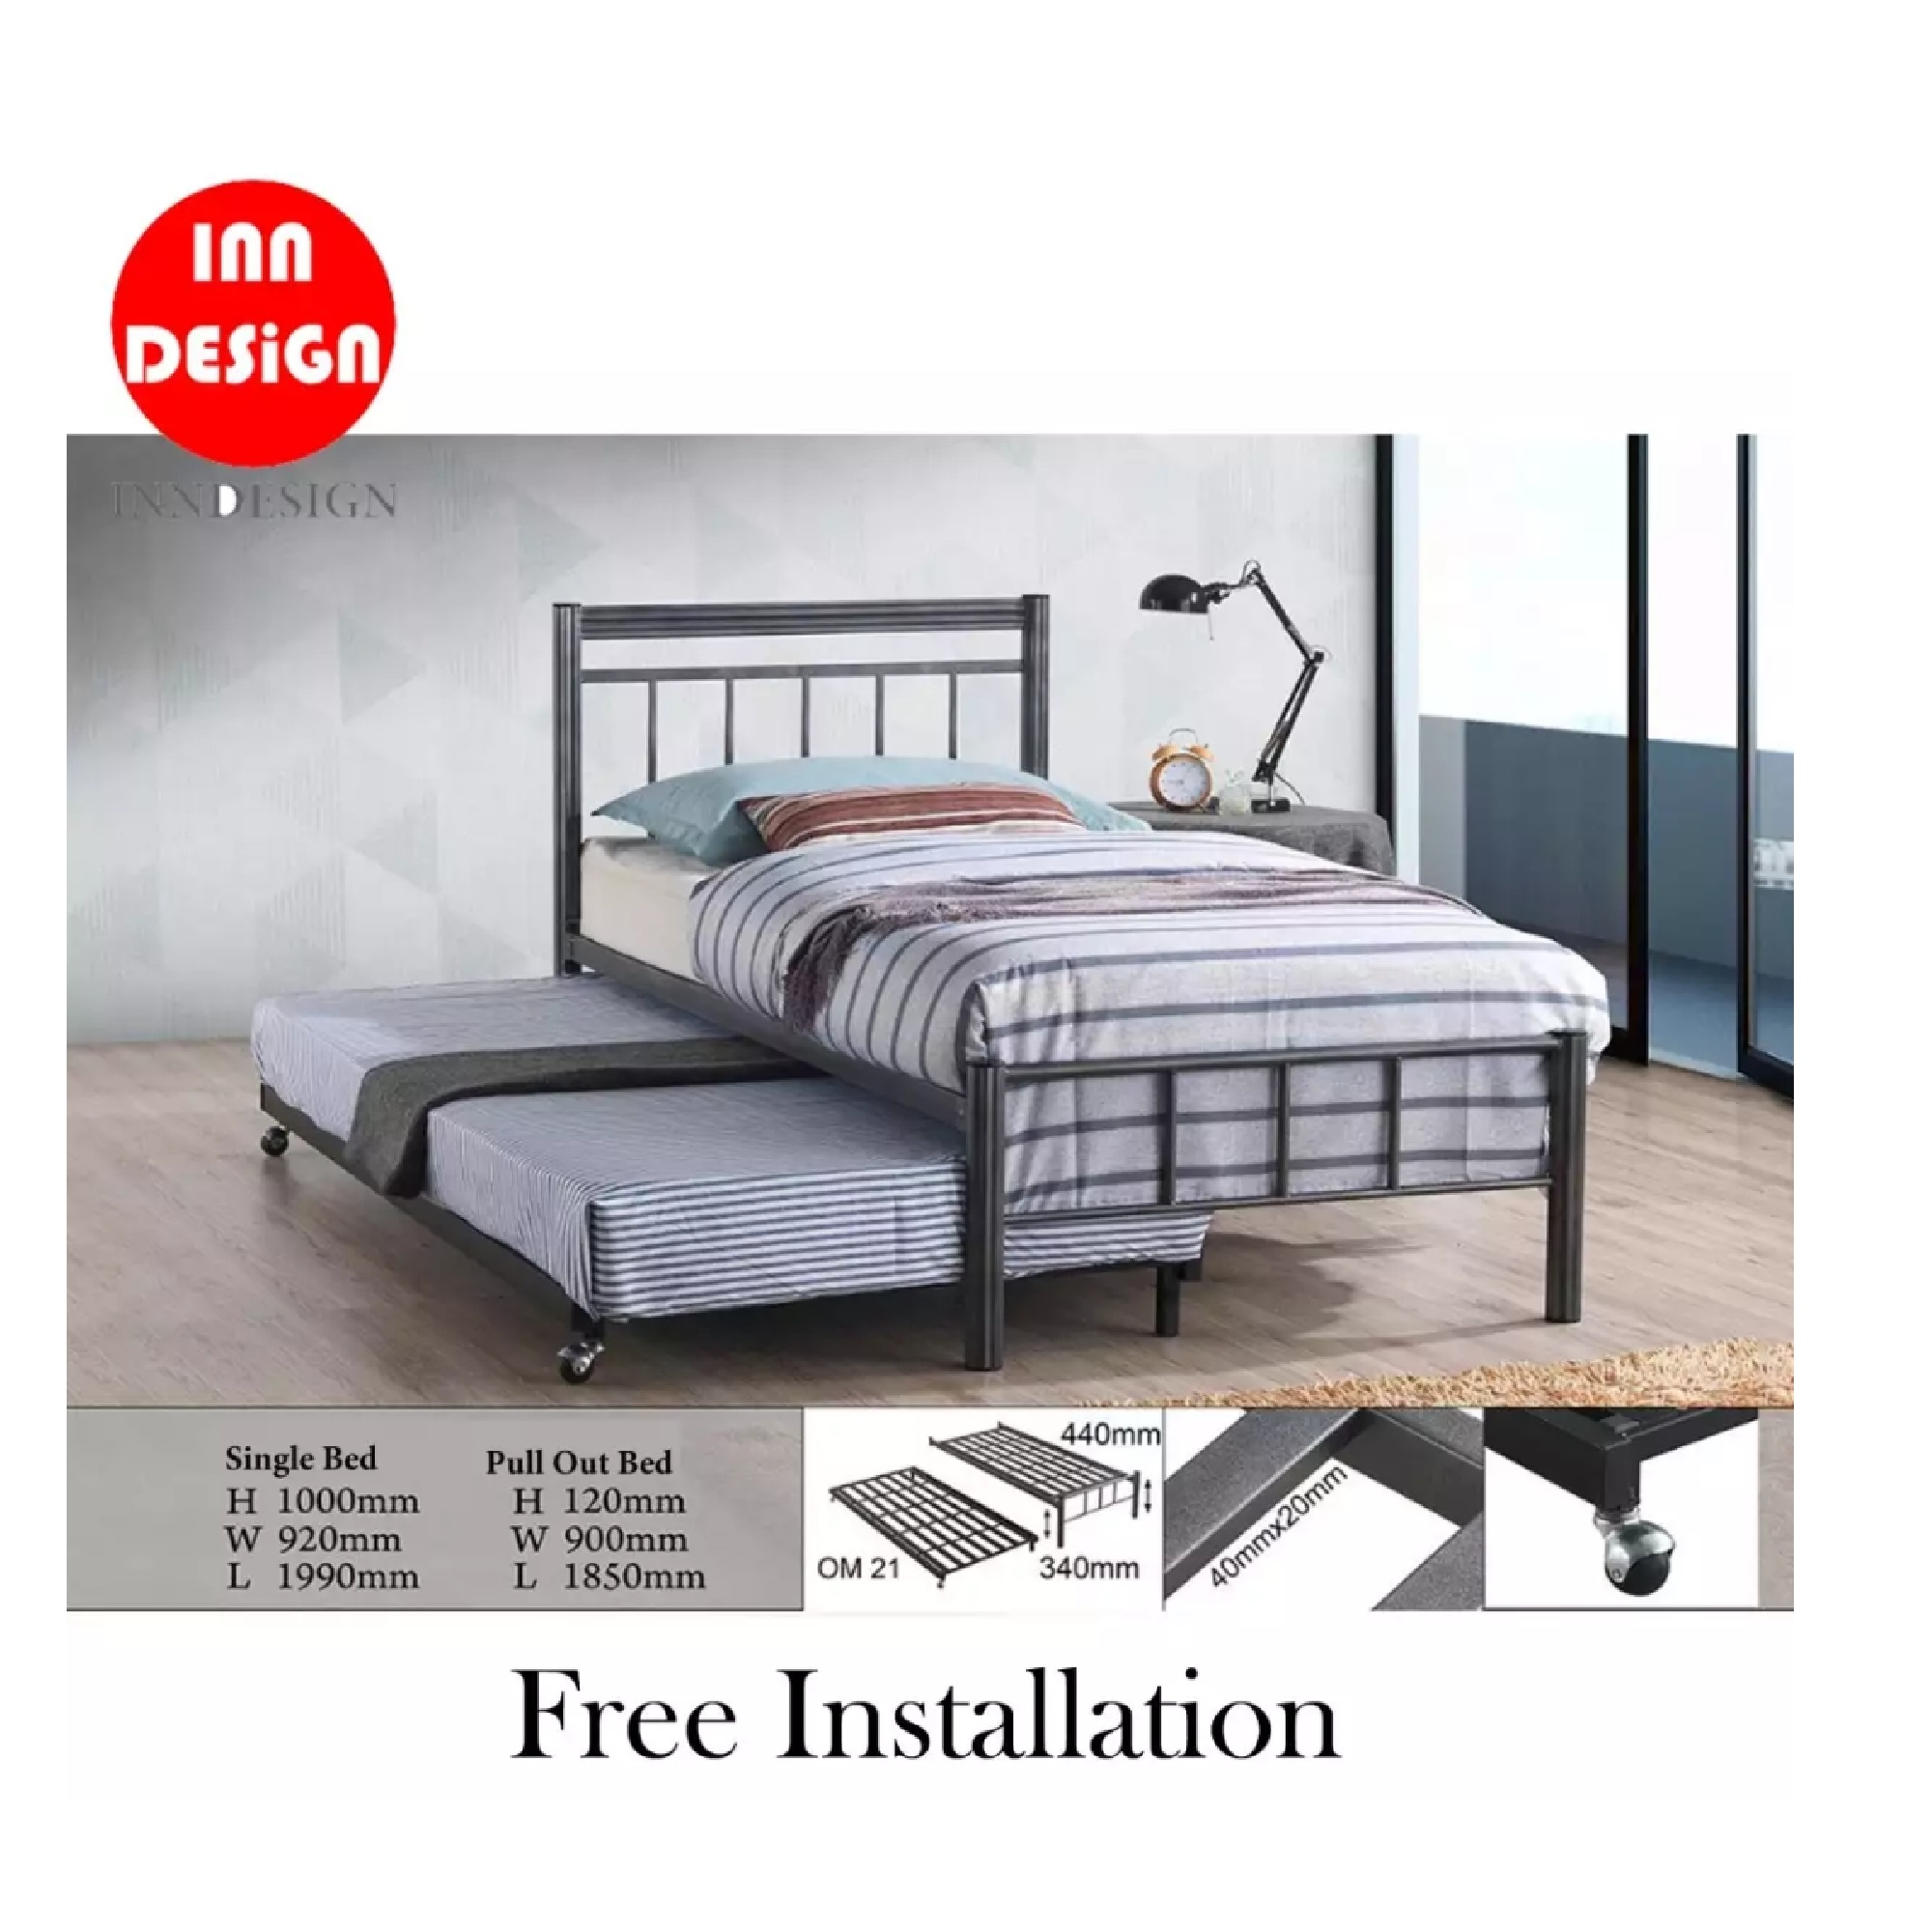 Emmie Solid Single Metal Bedframe With Add-On PullOut Bed (Free Delivery and Installation)